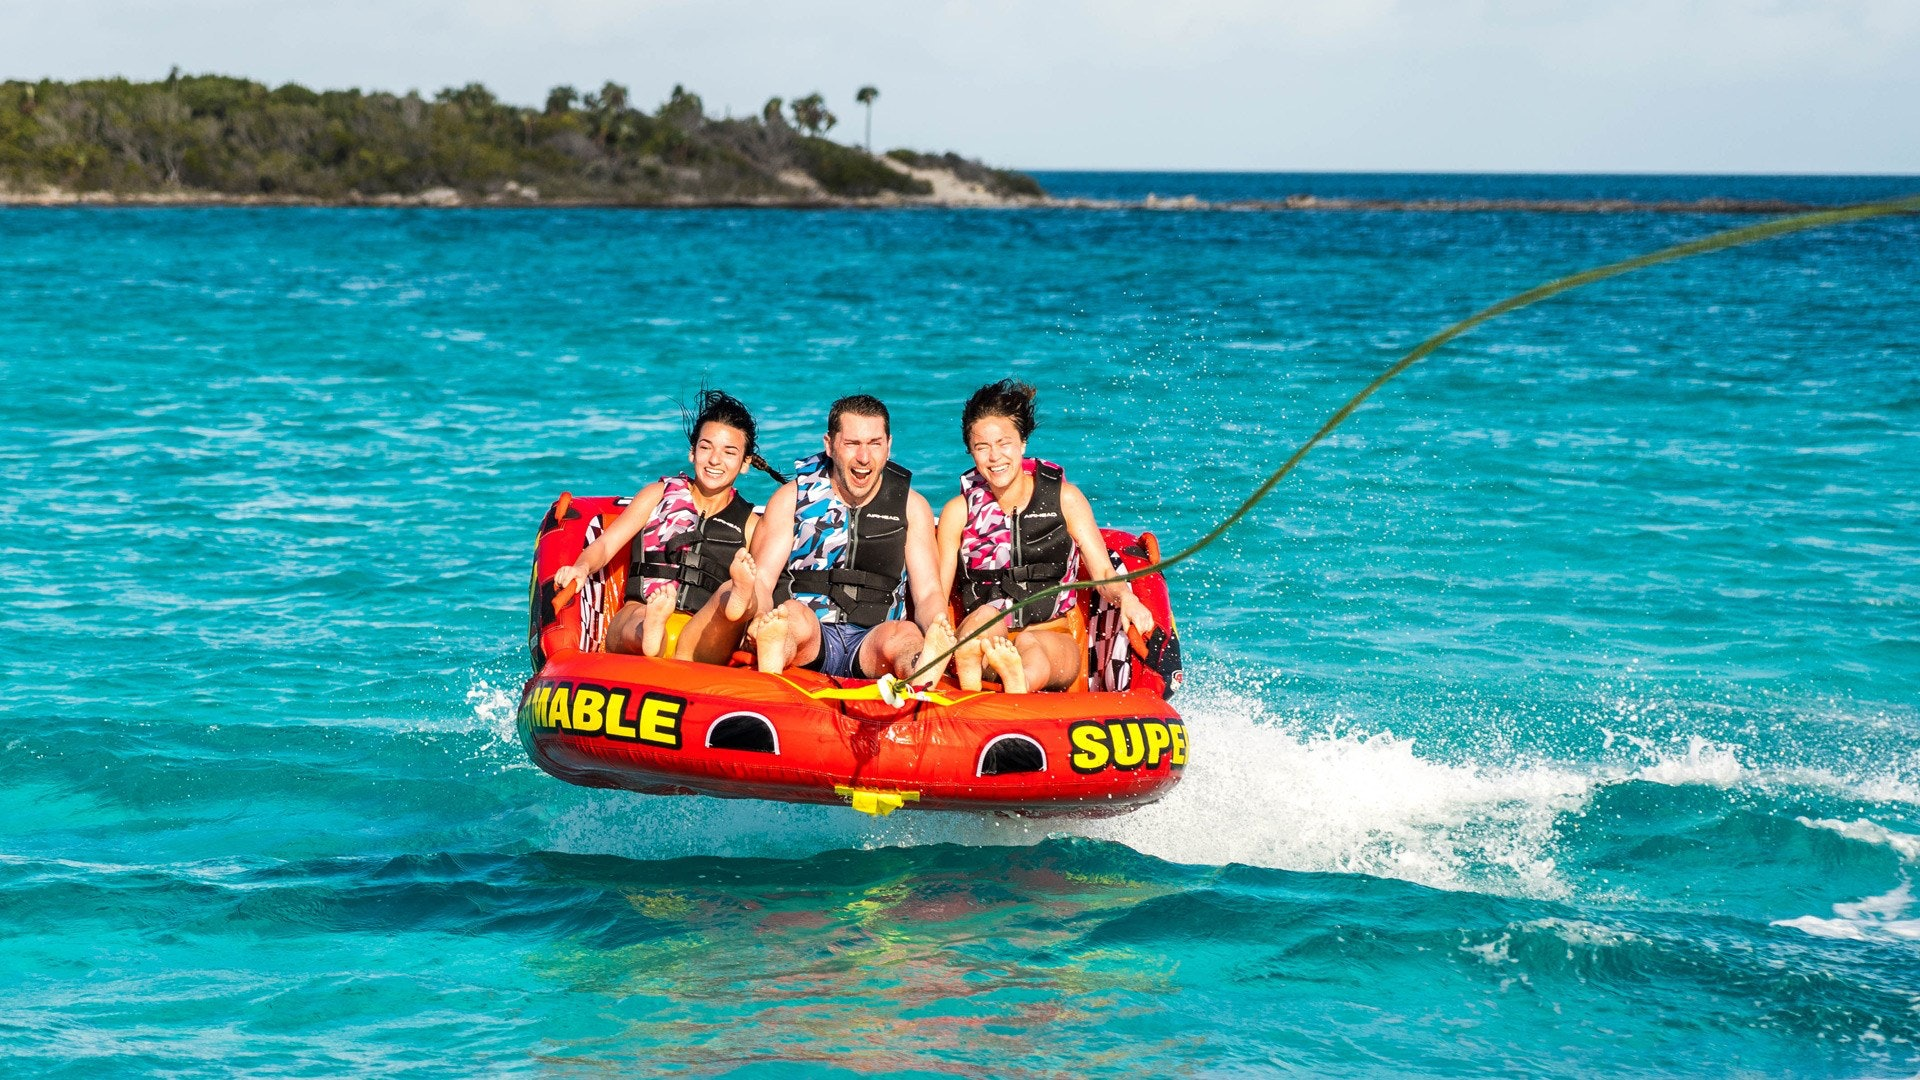 Three Teenagers Tubing on Airhead Tube